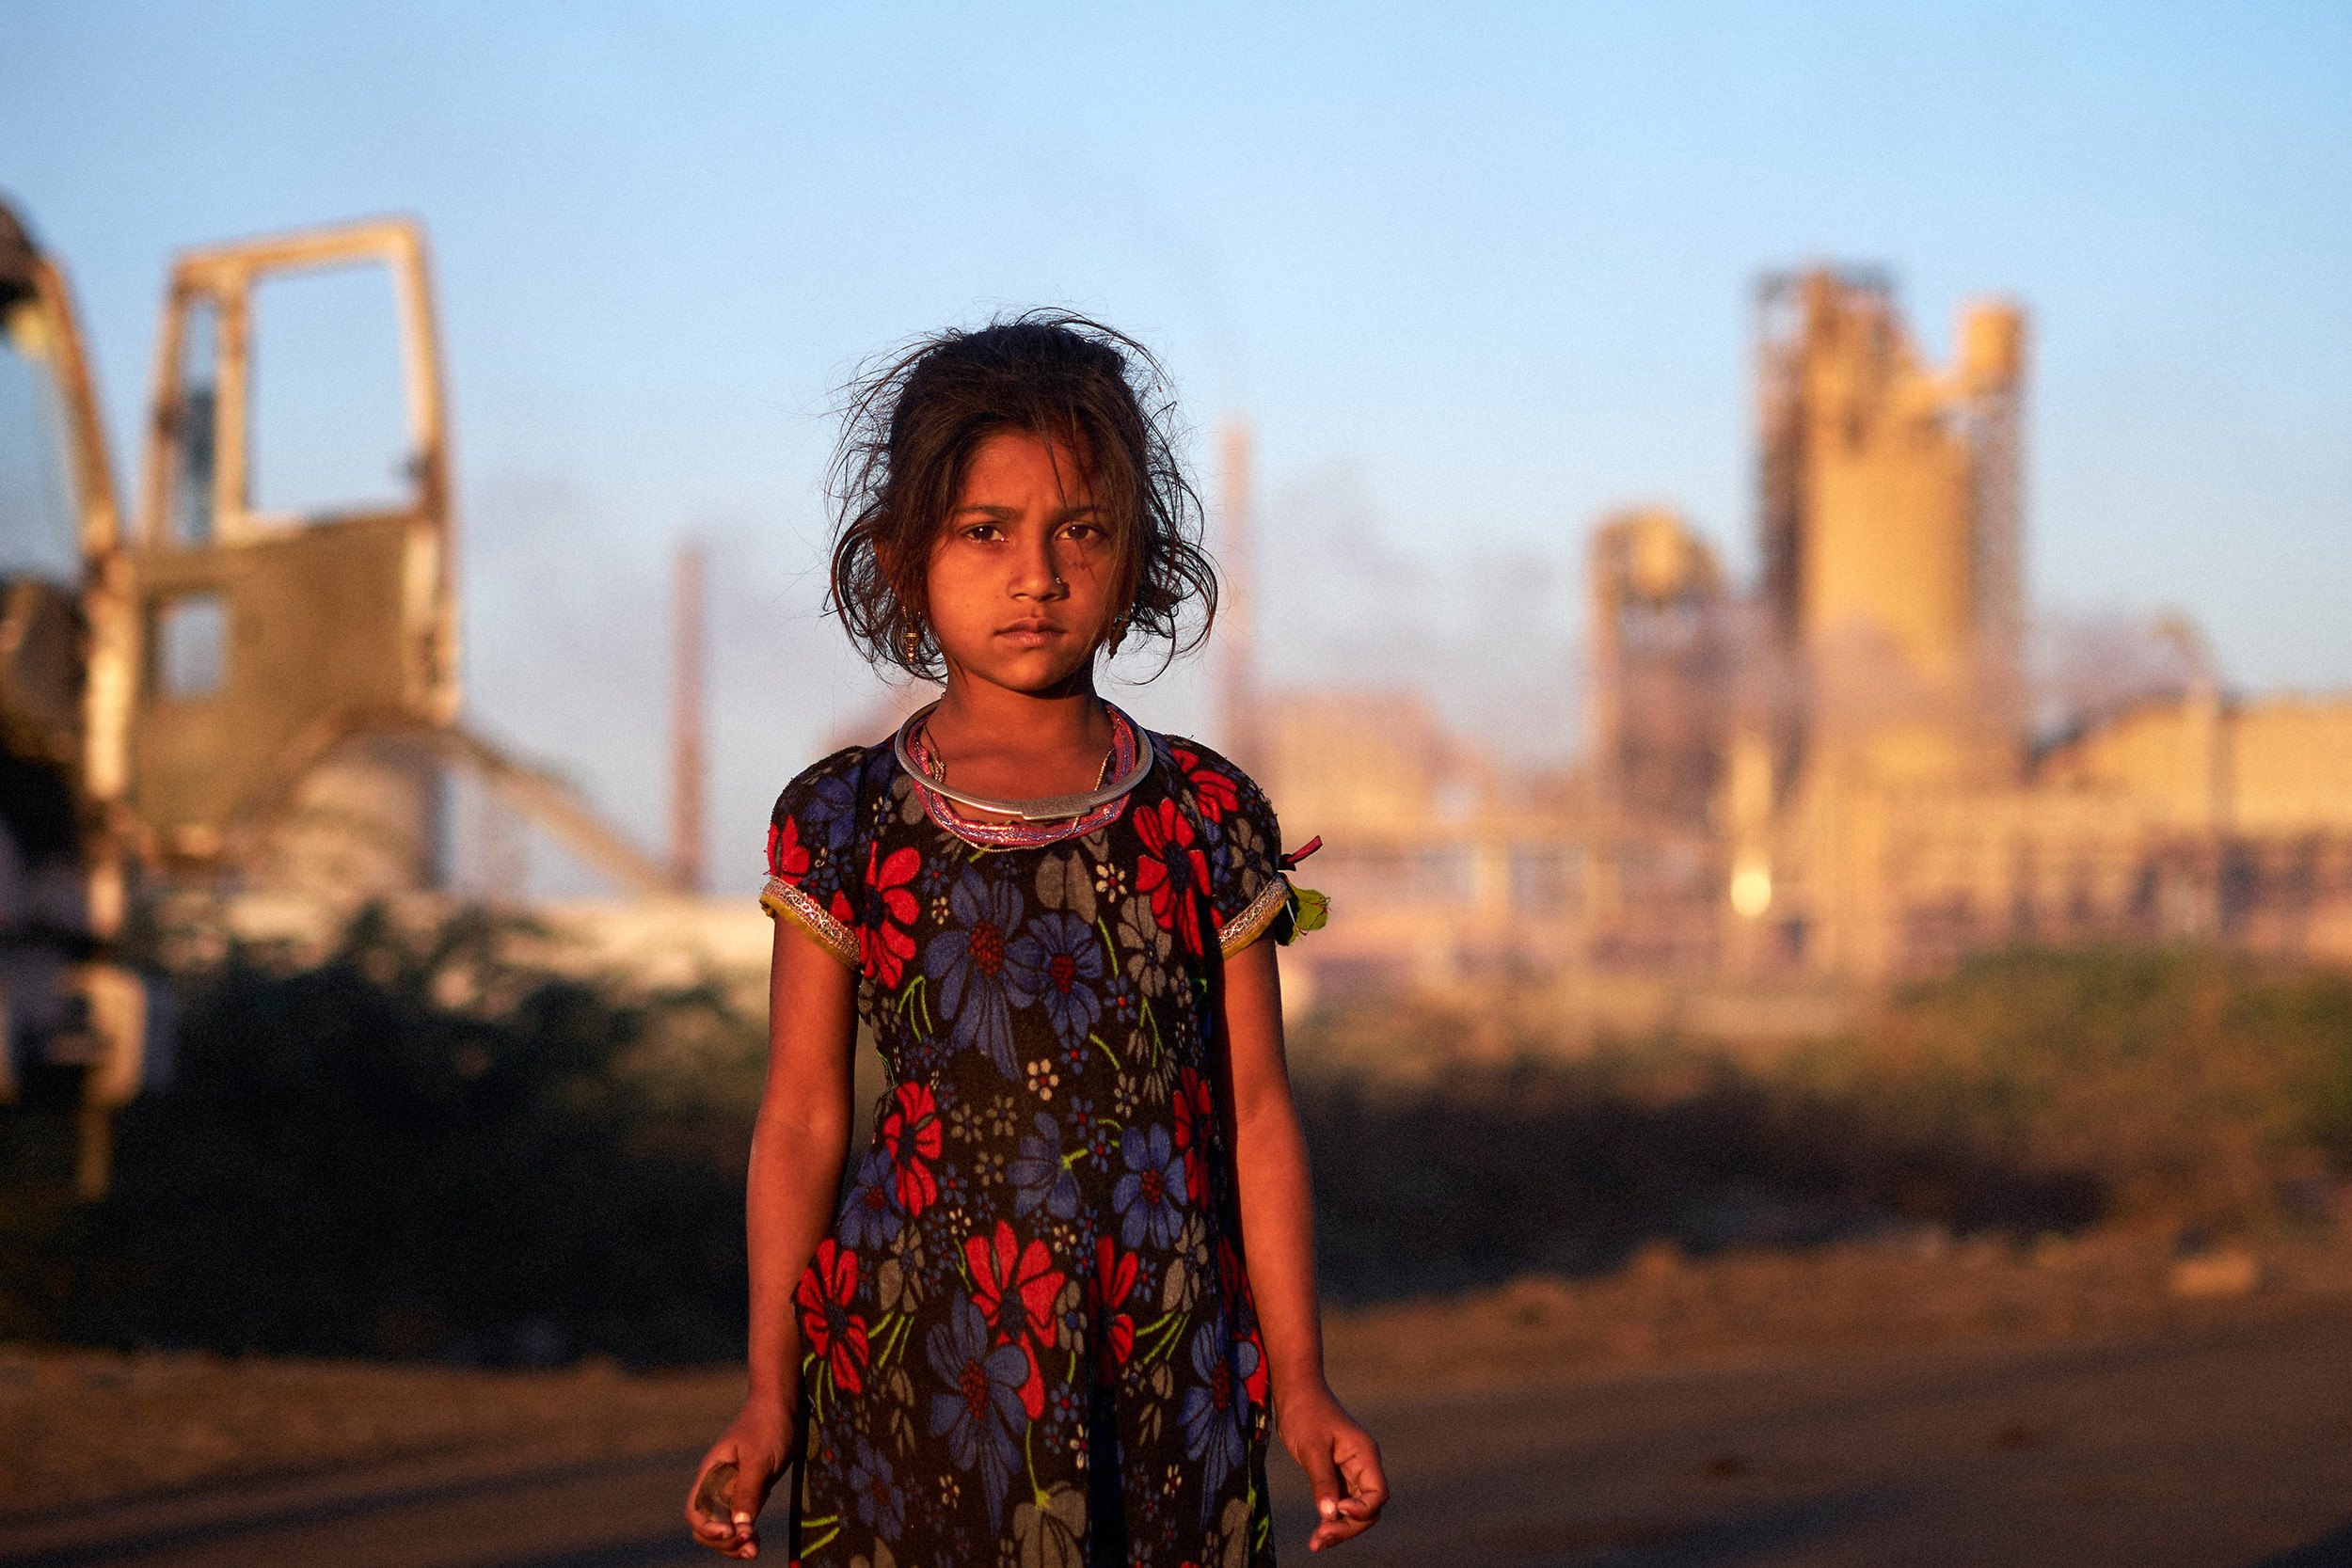 Girl in front of the chemical plant